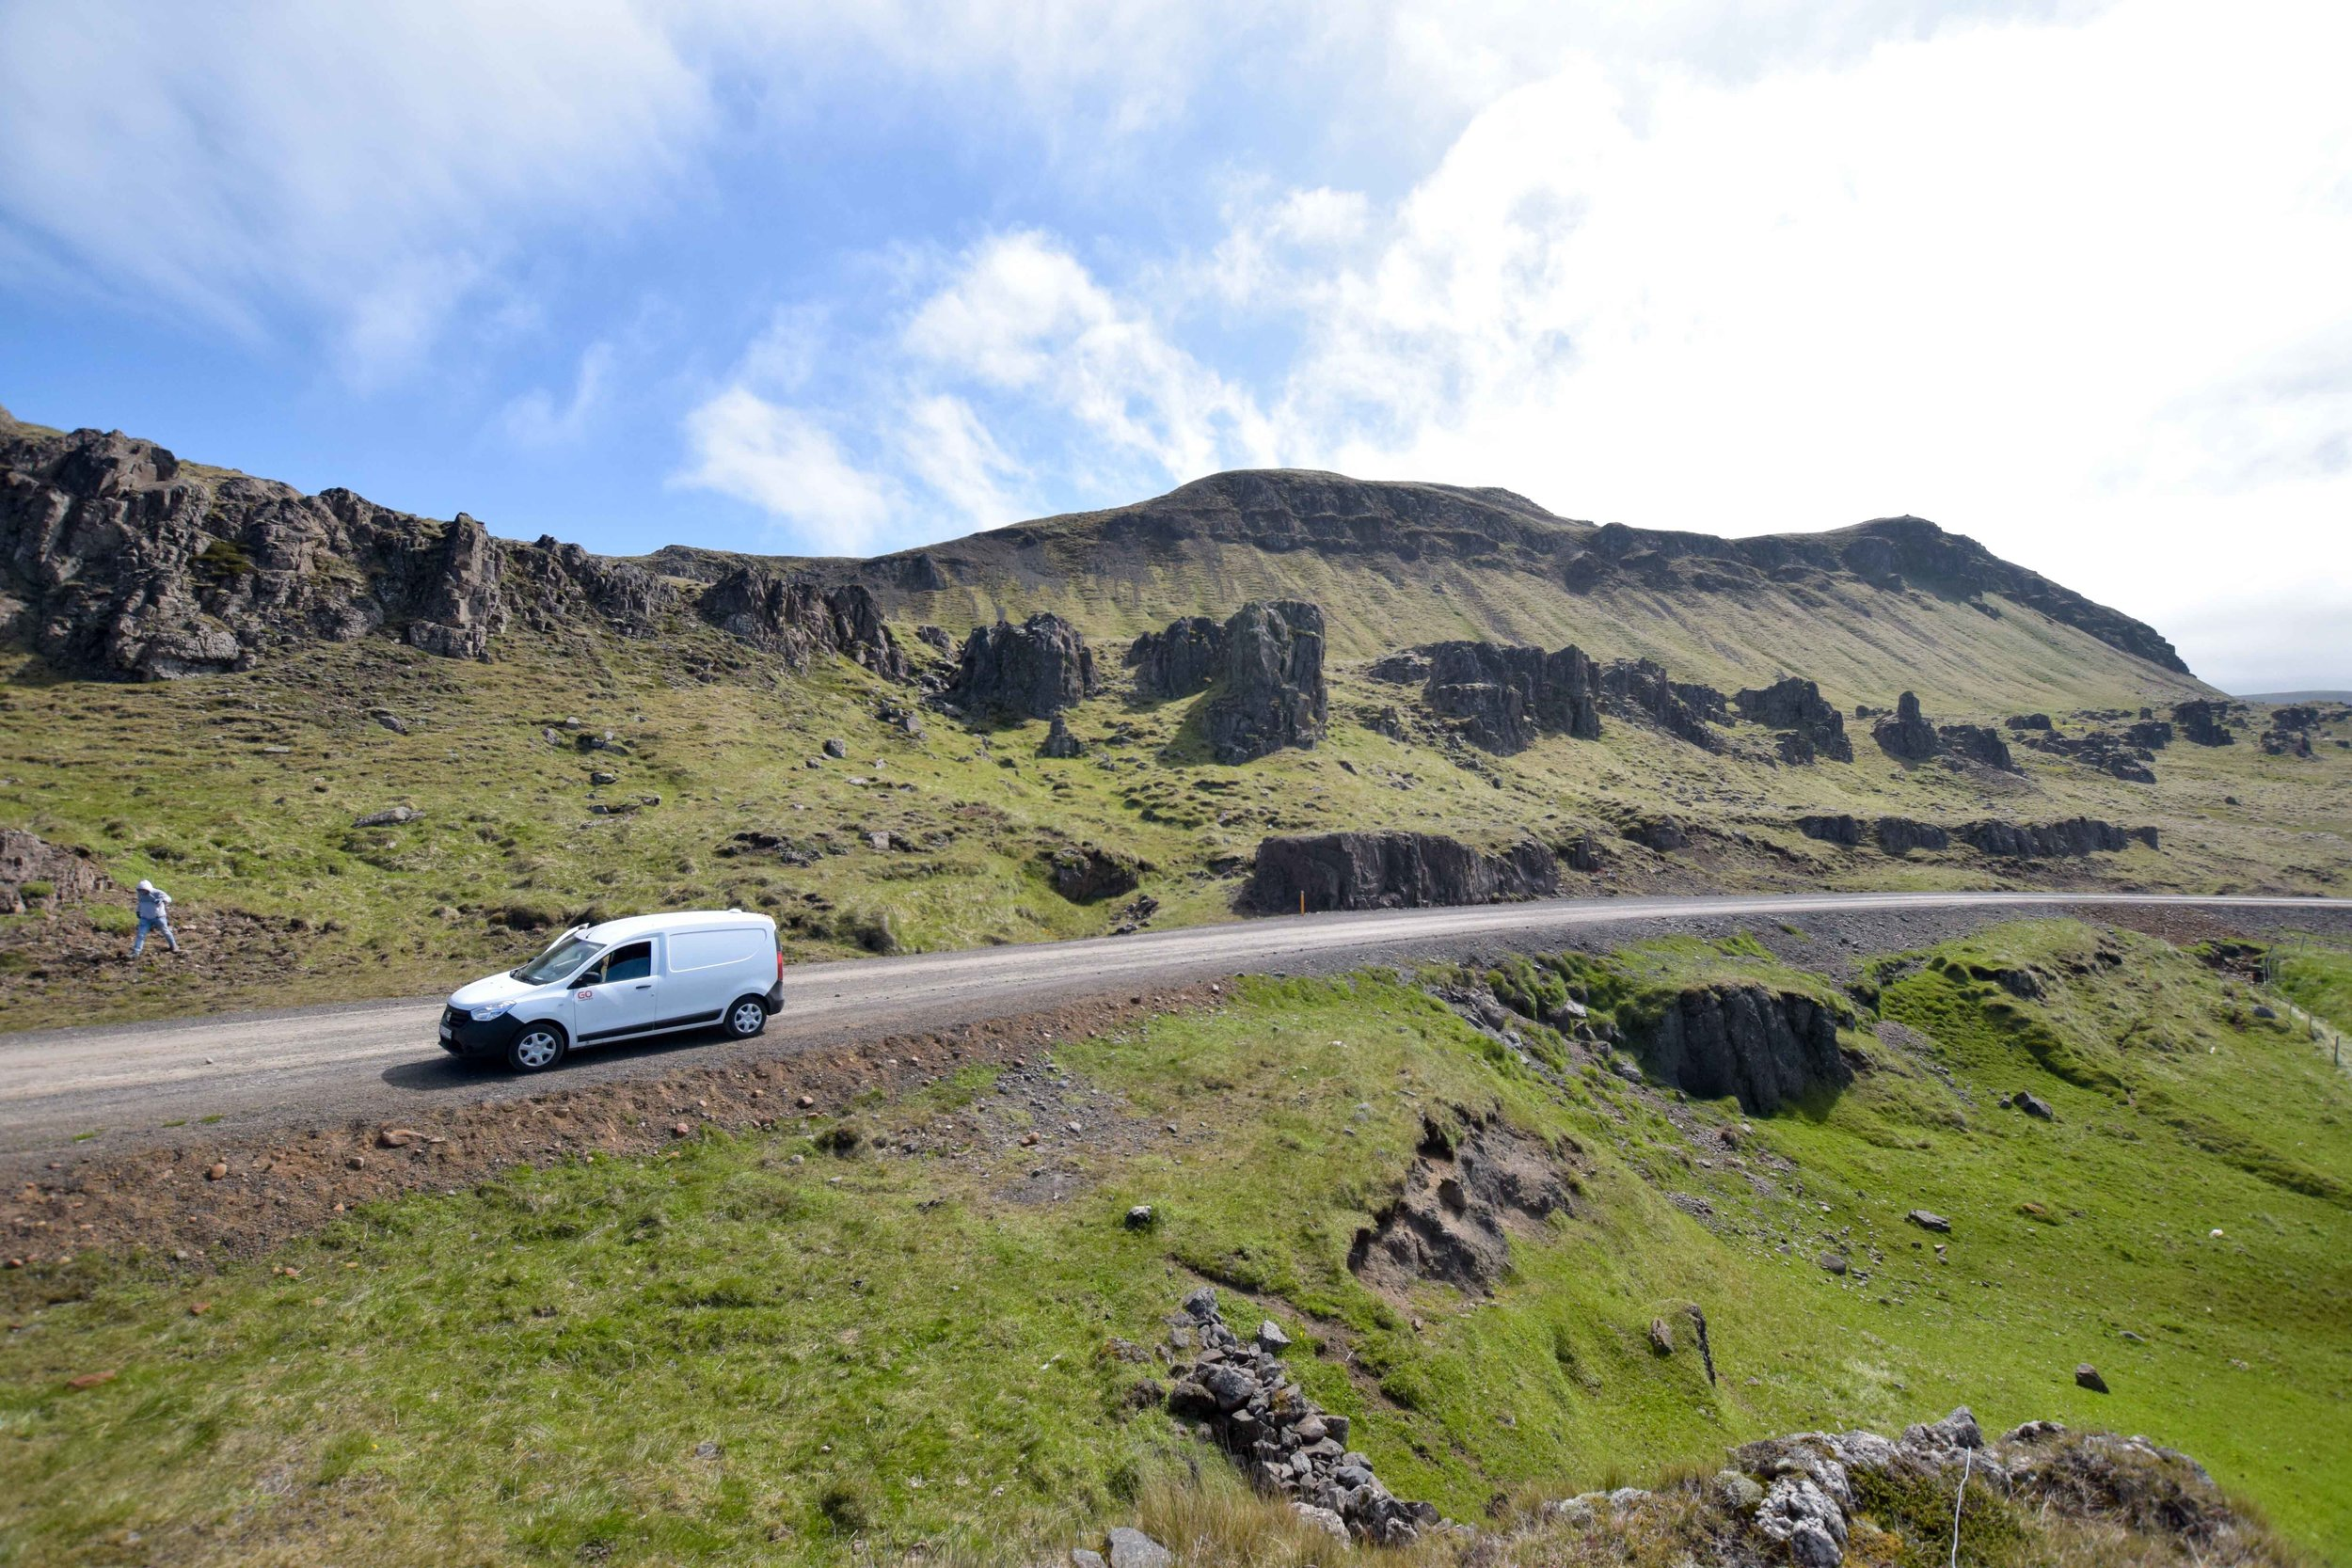 You can see so much more if you rent a van while traveling in Iceland.